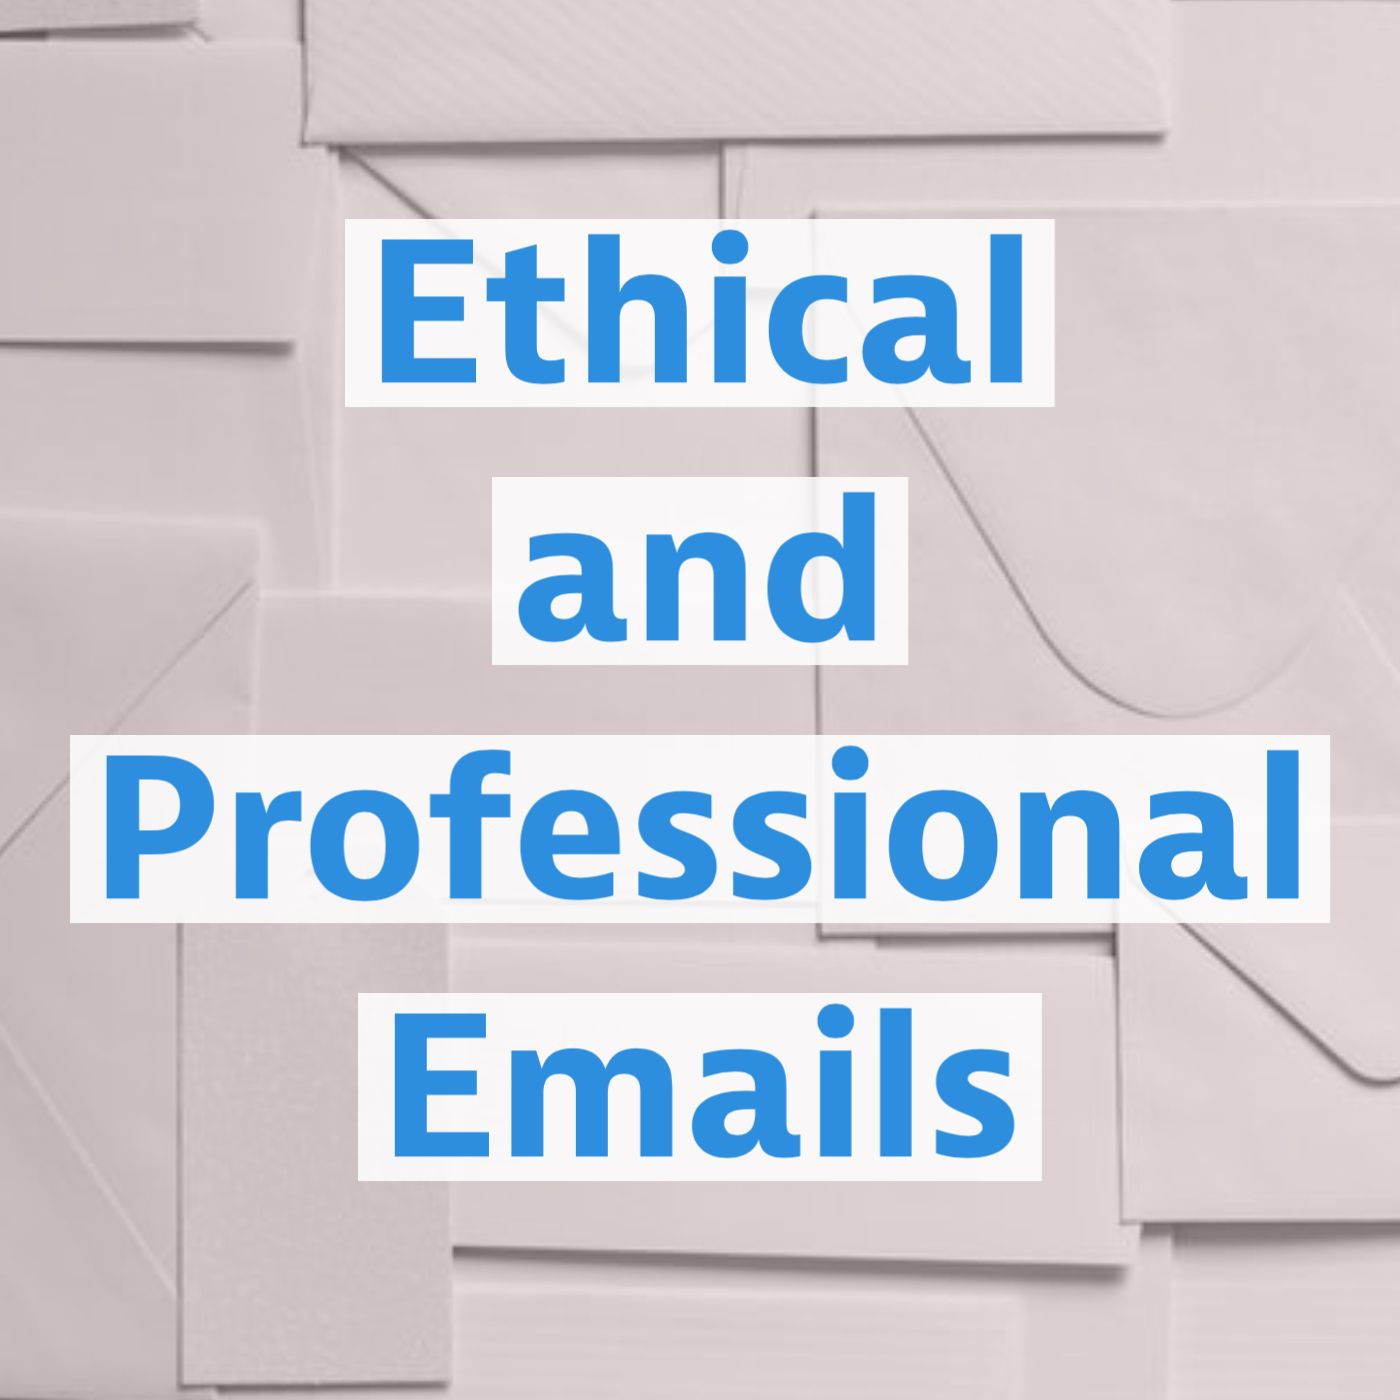 Ethical and Professional Emails